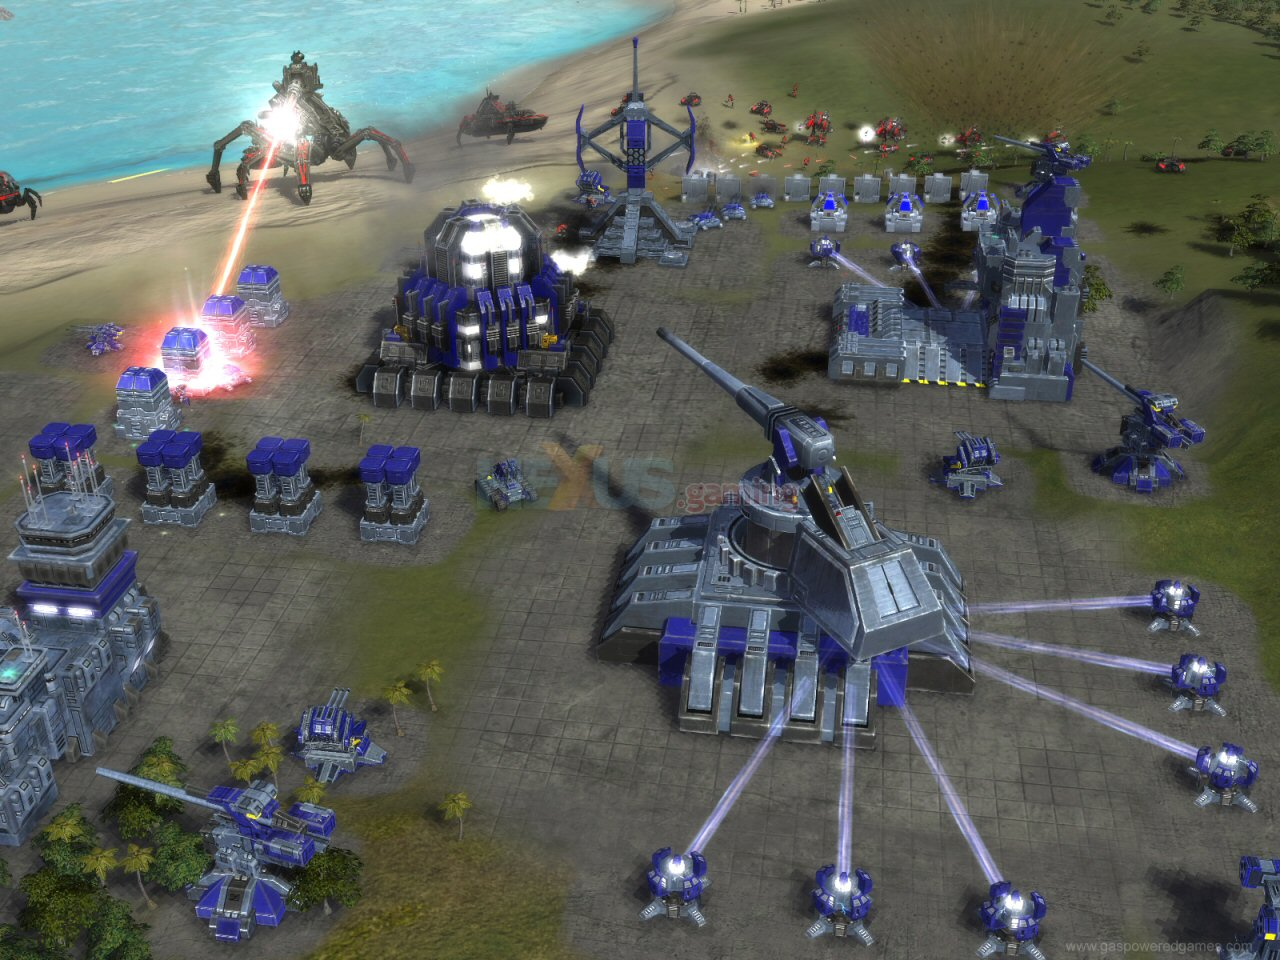 Supreme Commander didn't hold back when it comes to scale.